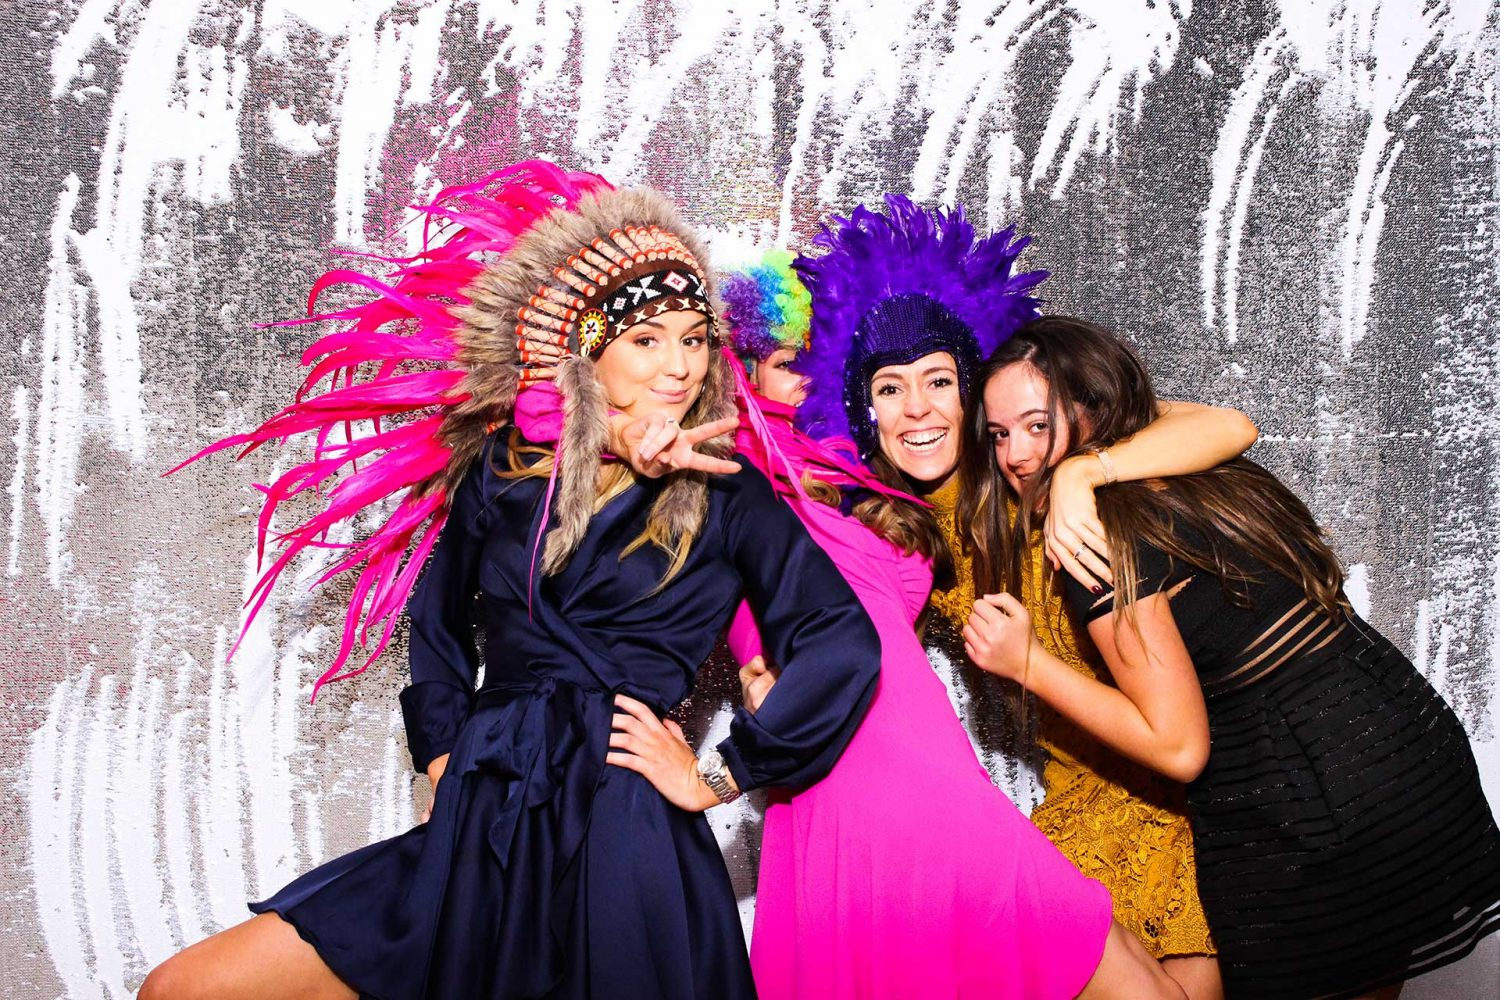 Planet Booths Photo Booth Hire West Midlands Photo Booth Hire Birmingham Slider